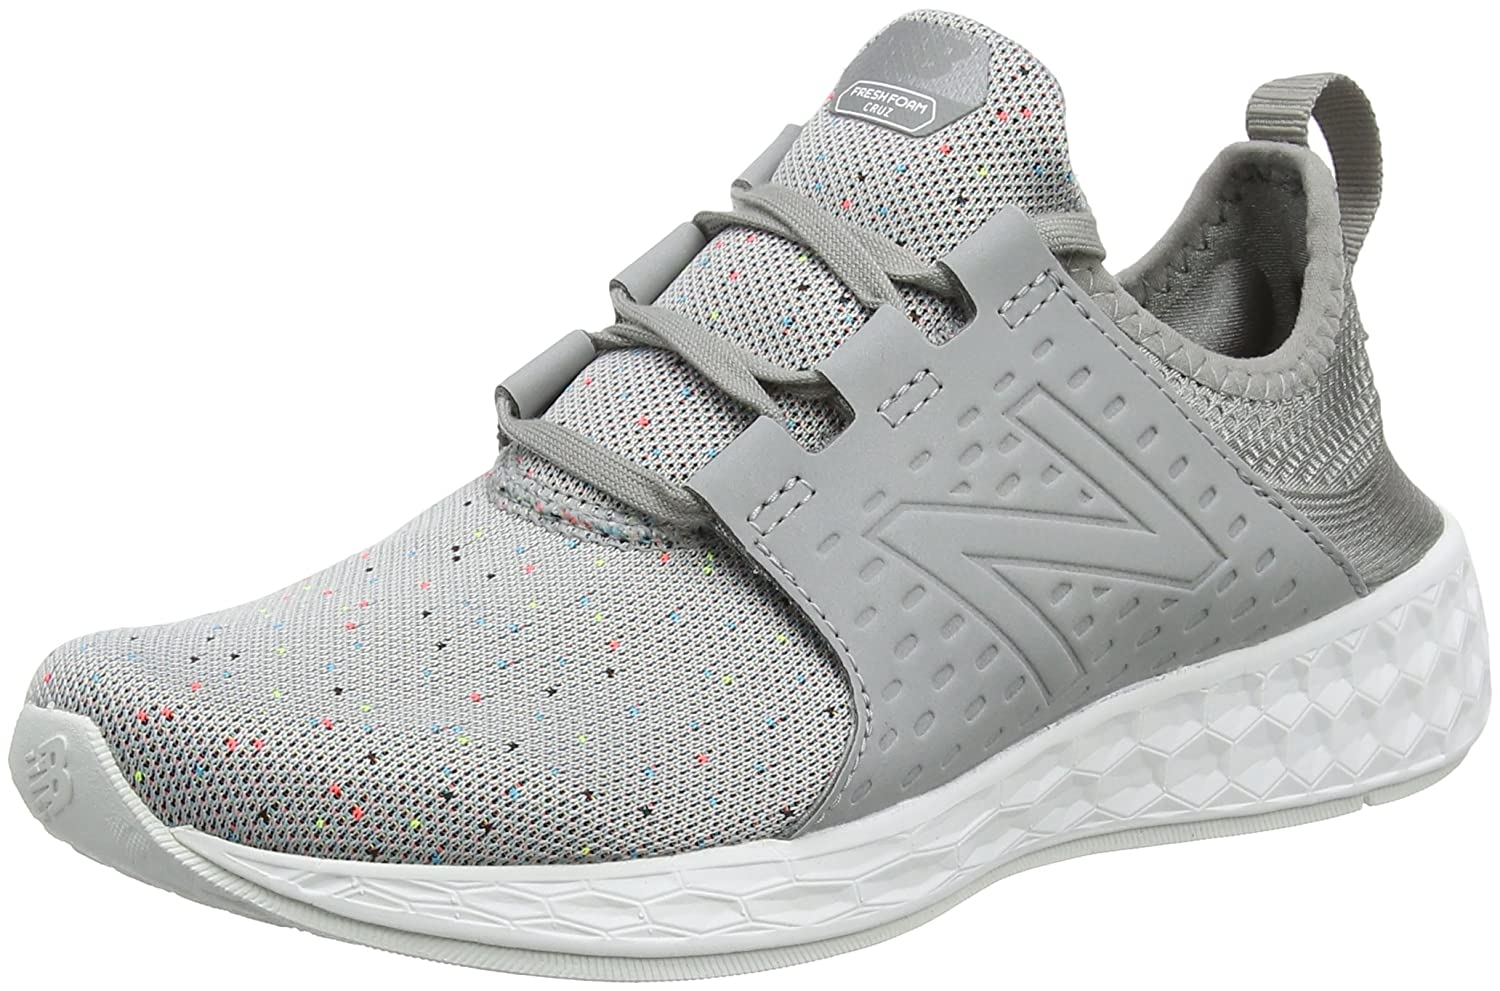 TALLA 37.5 EU. New Balance Fresh Foam Cruz Sport Pack Reflective, Zapatillas de Running para Mujer